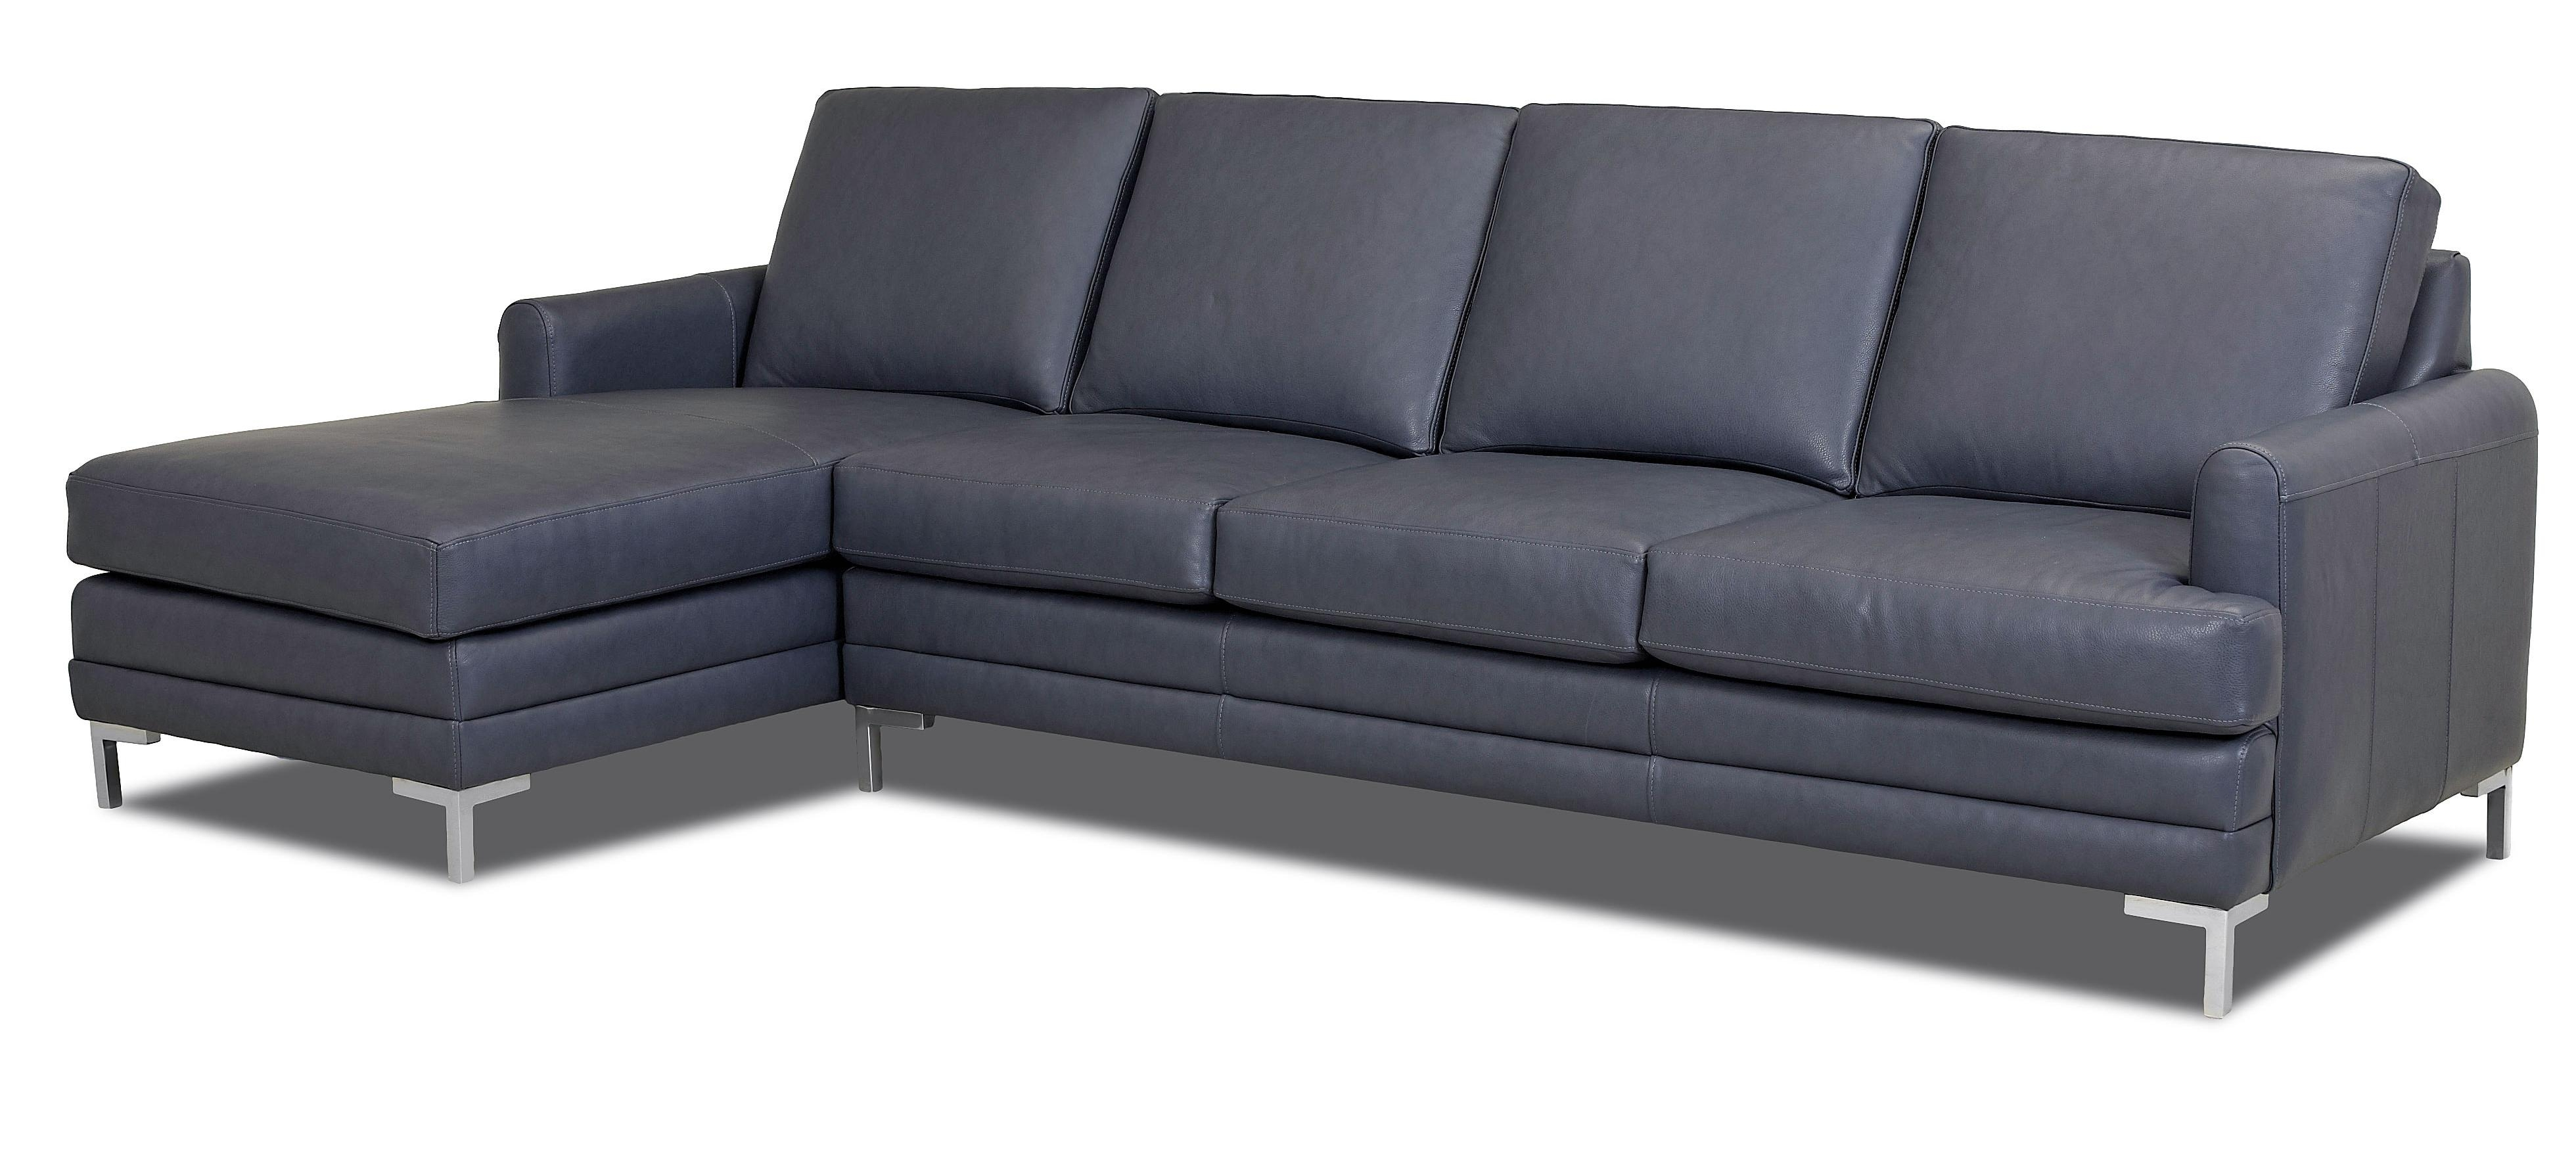 Best 10 Piece Sectional Sofa 15 On Sears Sectional Sofa With 10 Throughout 10 Piece Sectional Sofa (#8 of 12)